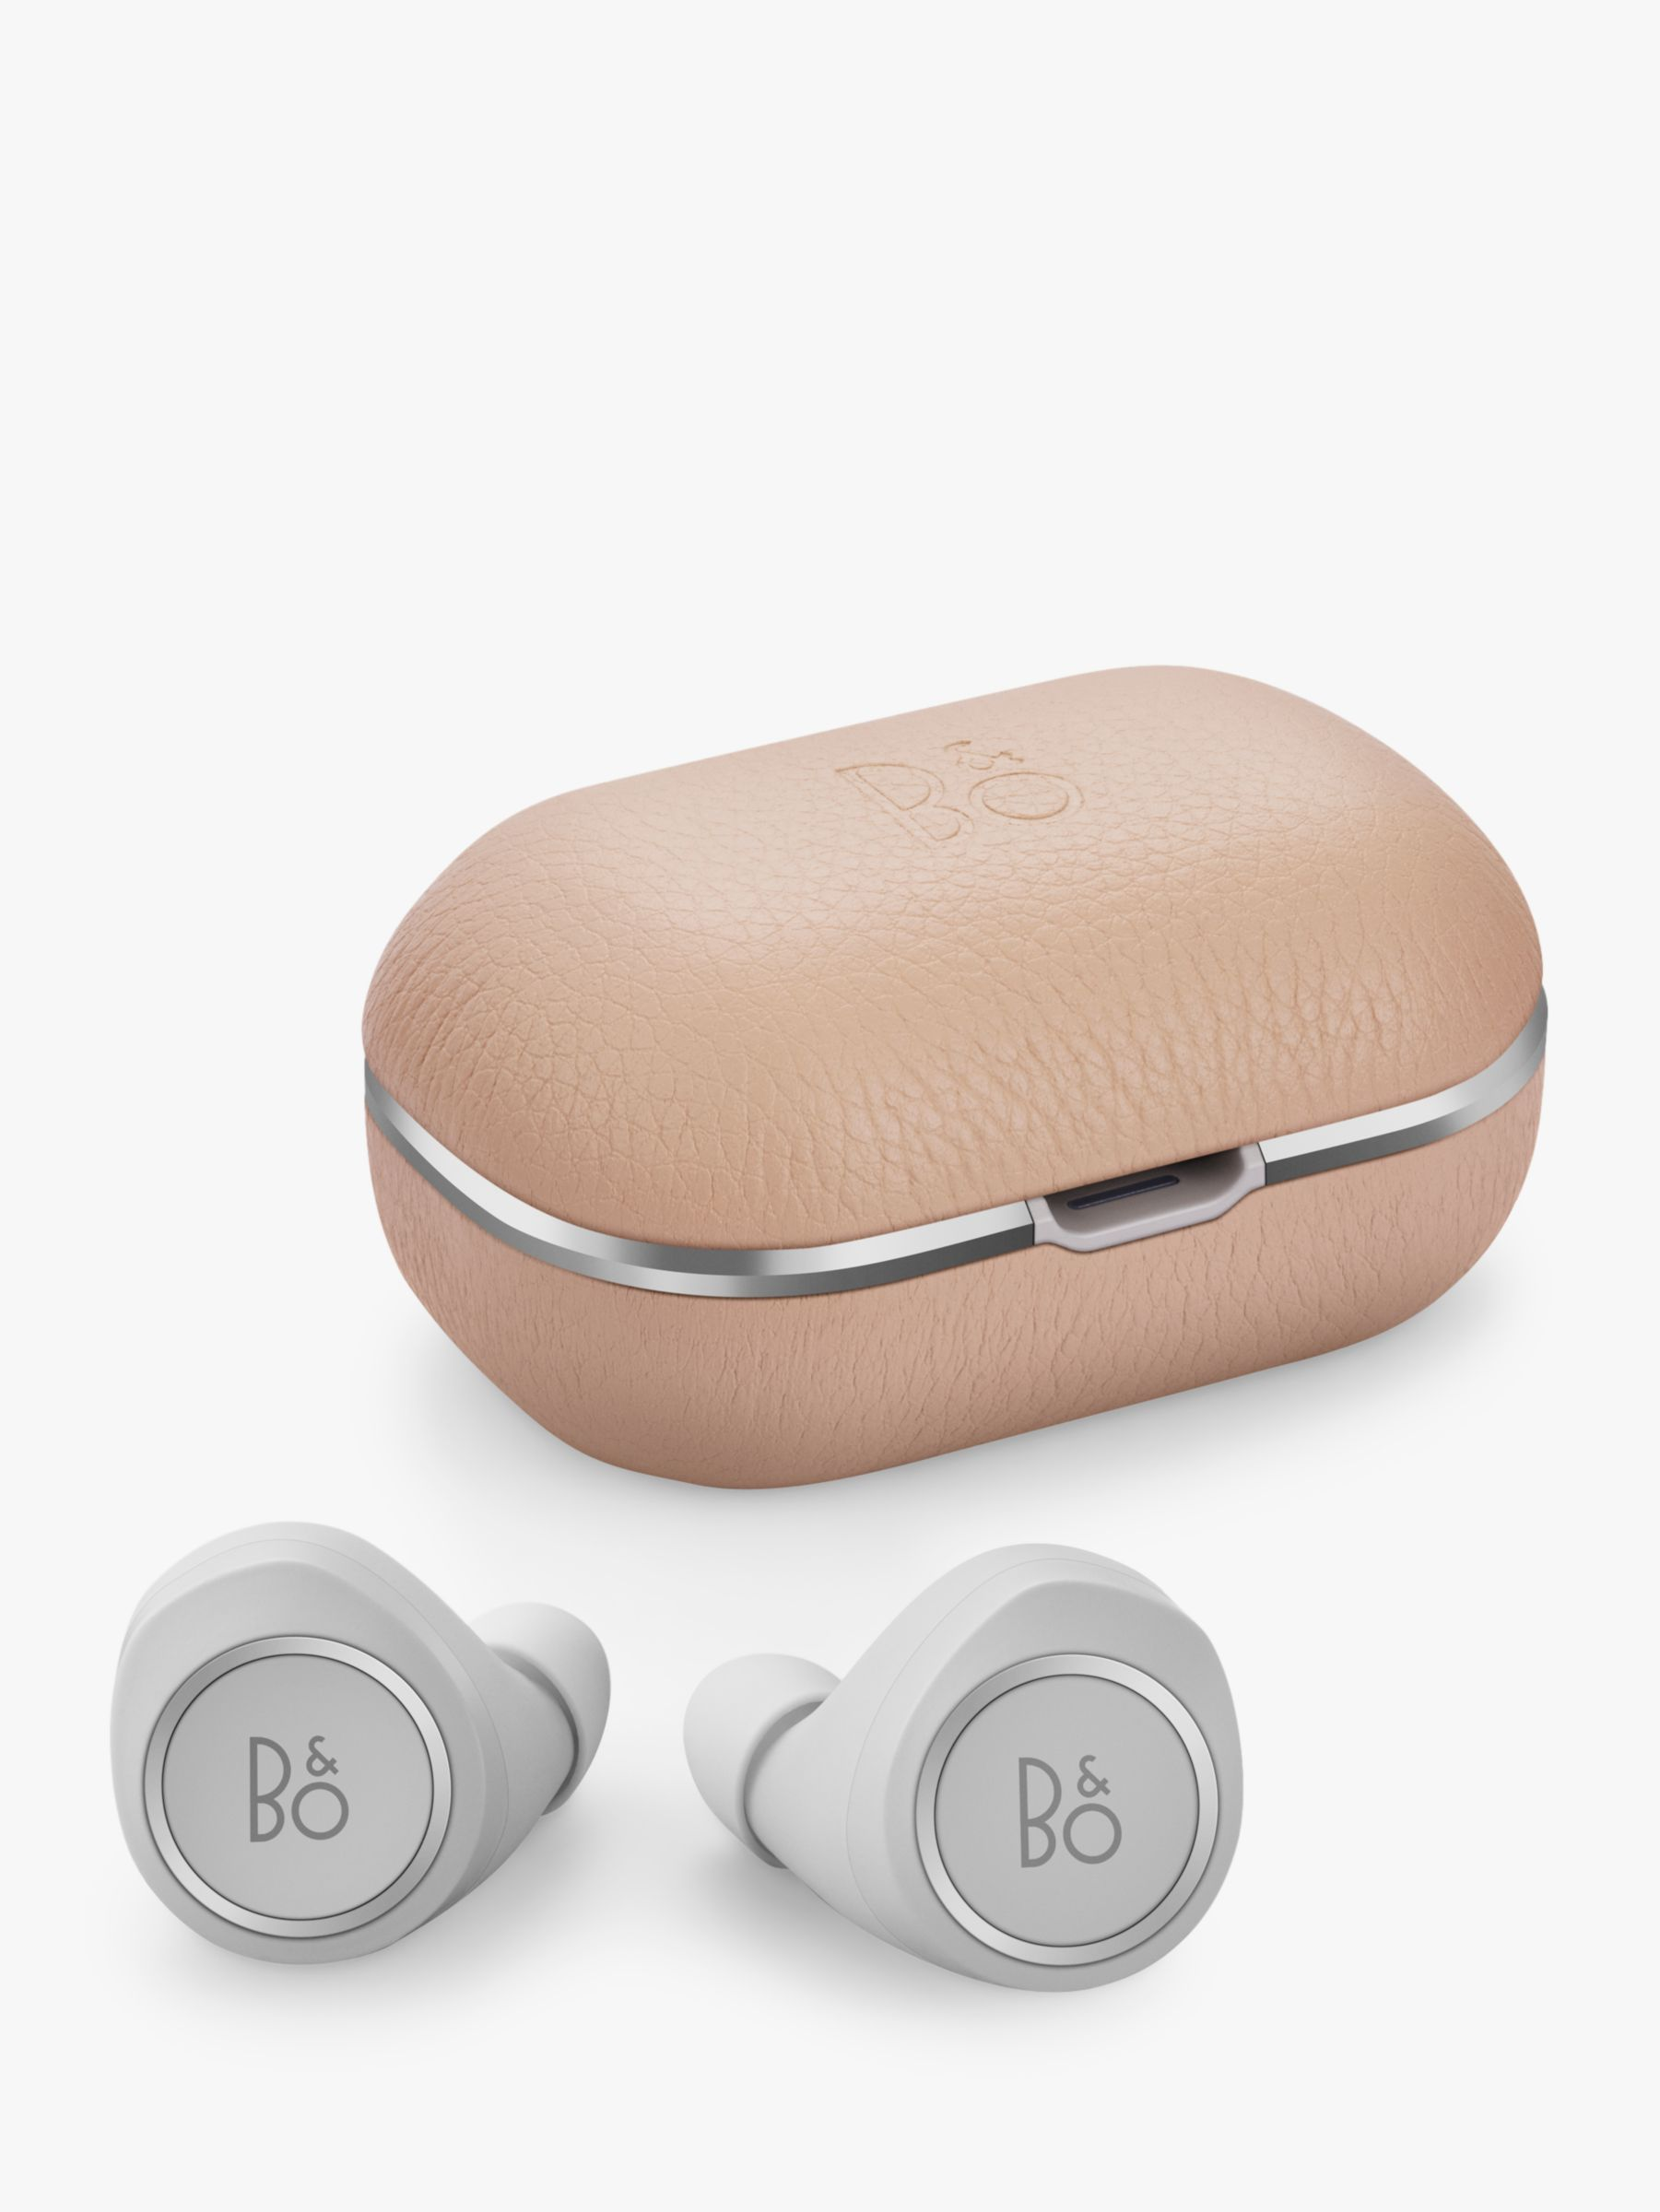 Bang & Olufsen Bang & Olufsen Beoplay E8 2.0 True Wireless Bluetooth In-Ear Headphones with Mic/Remote